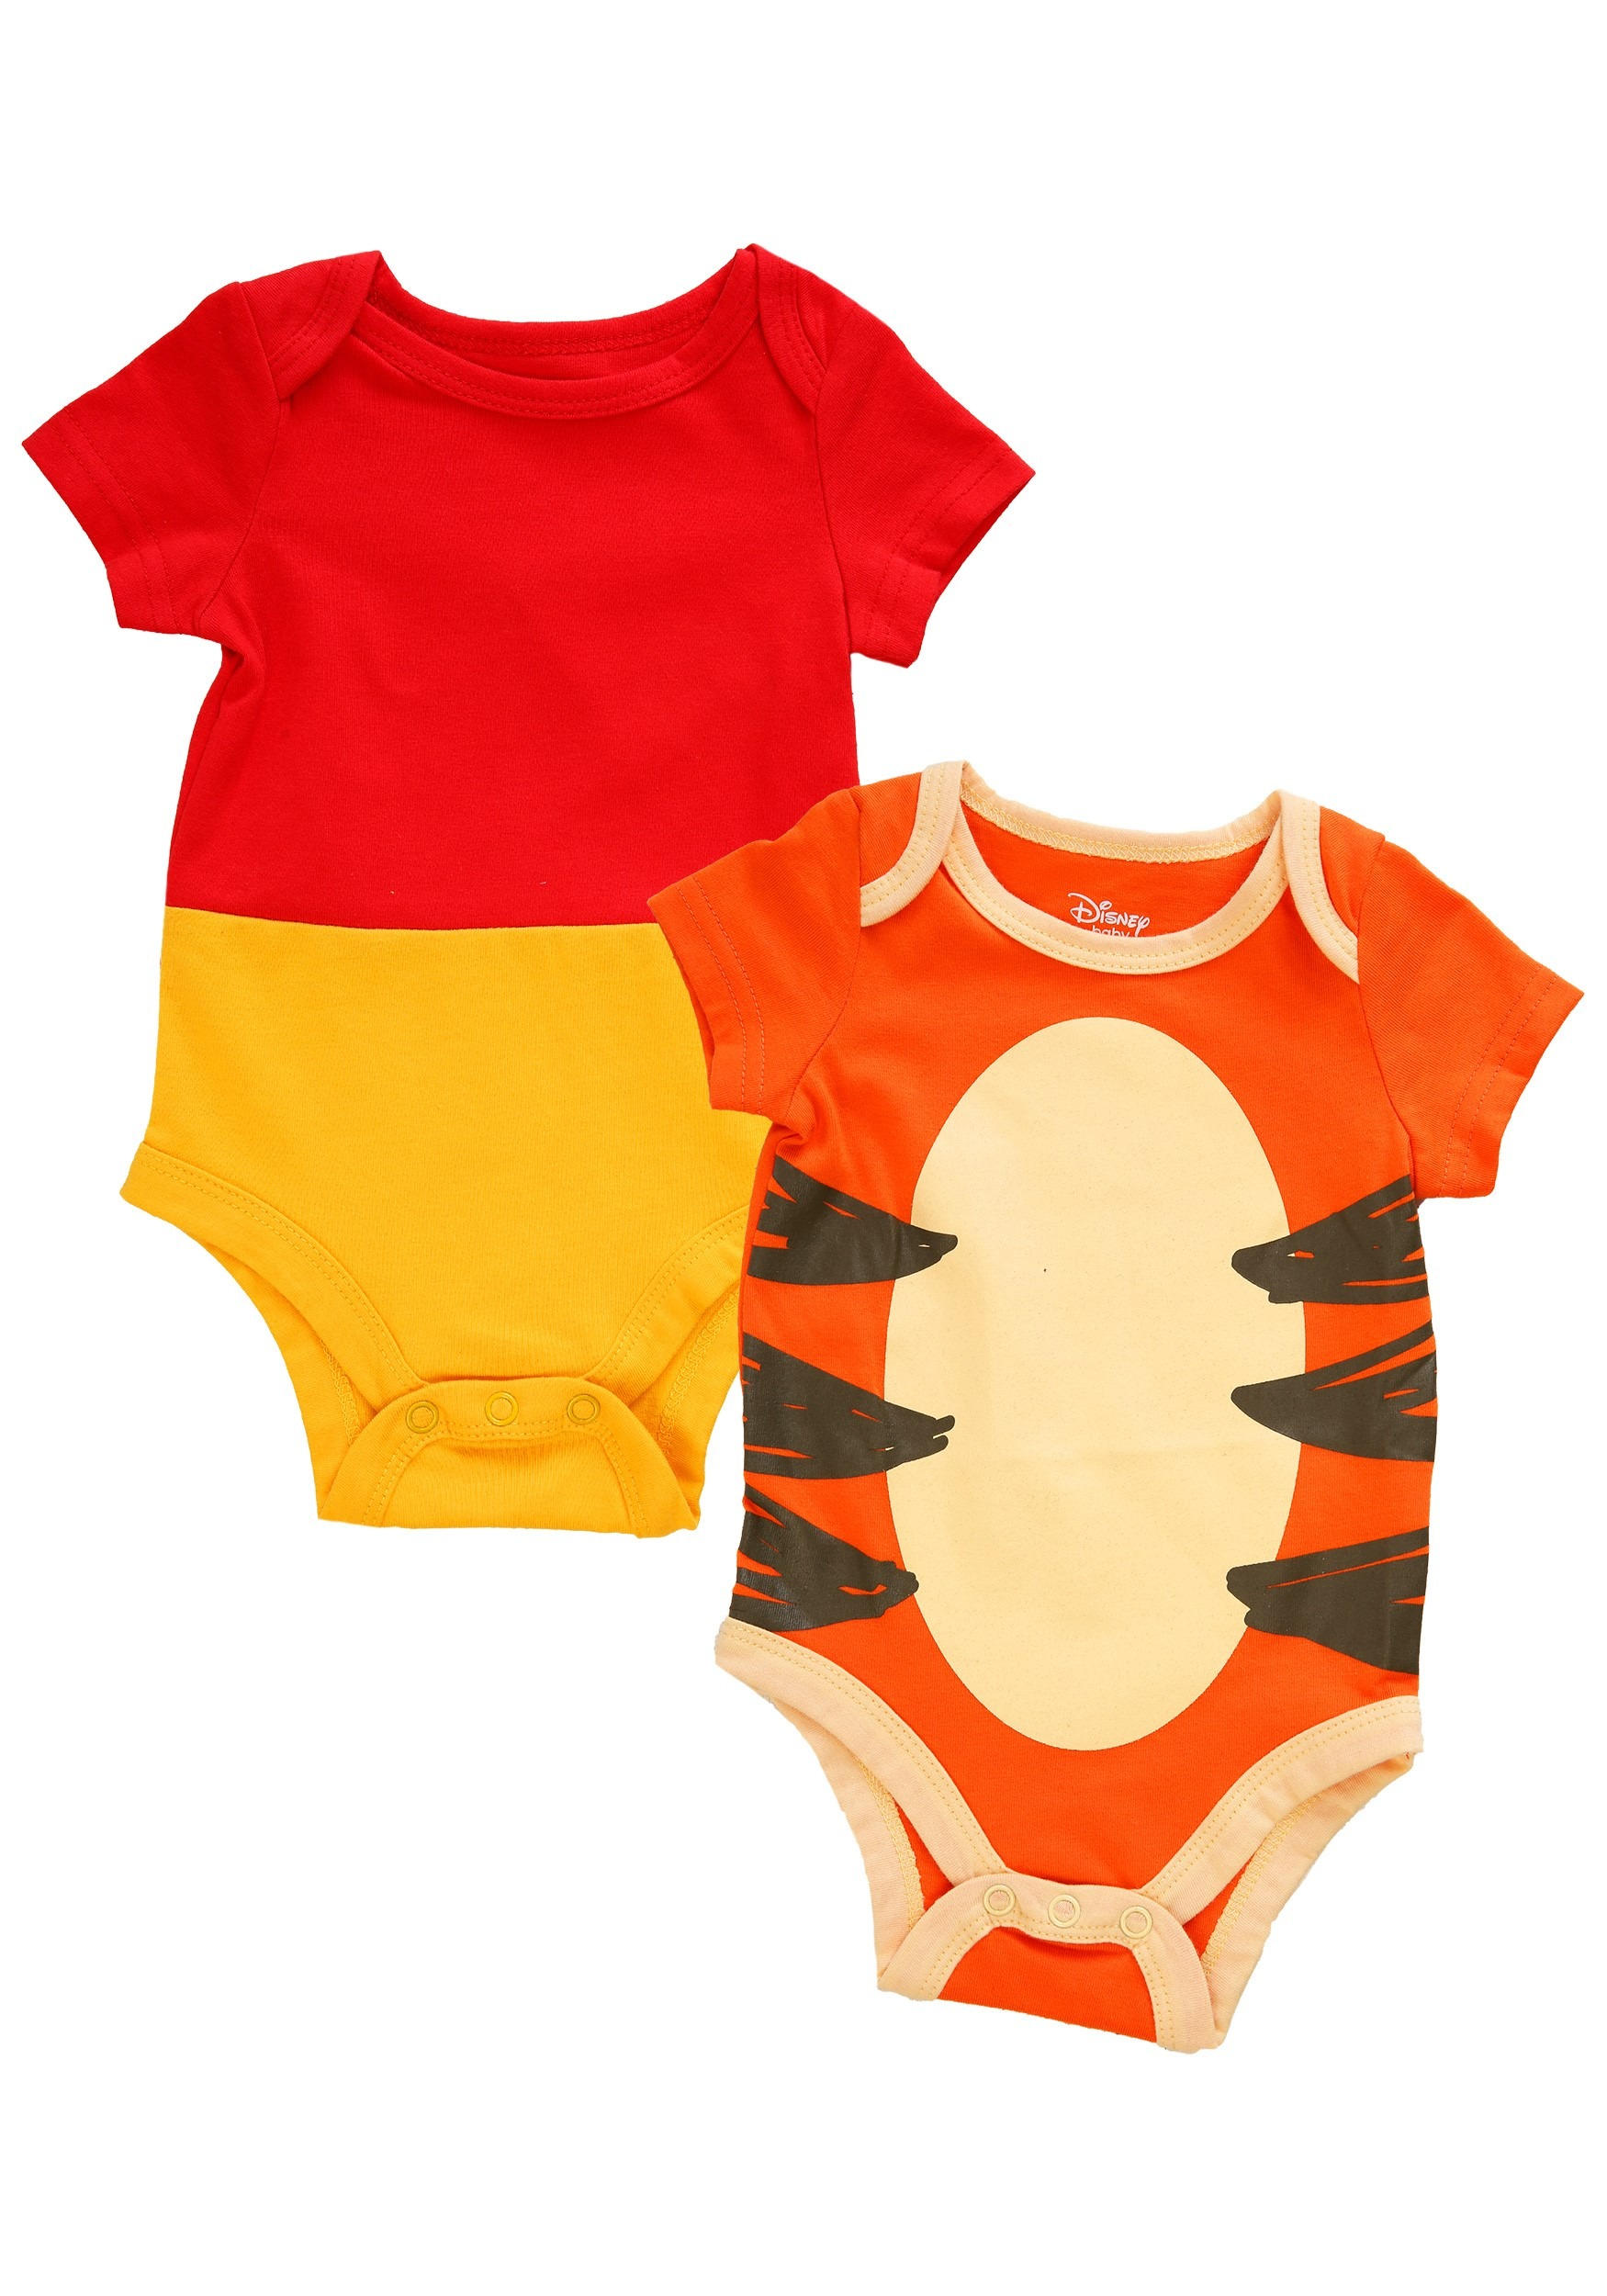 3867c7edbf68 Infant 2 Pack Winnie The Pooh and Tigger Onesie UpdateMain